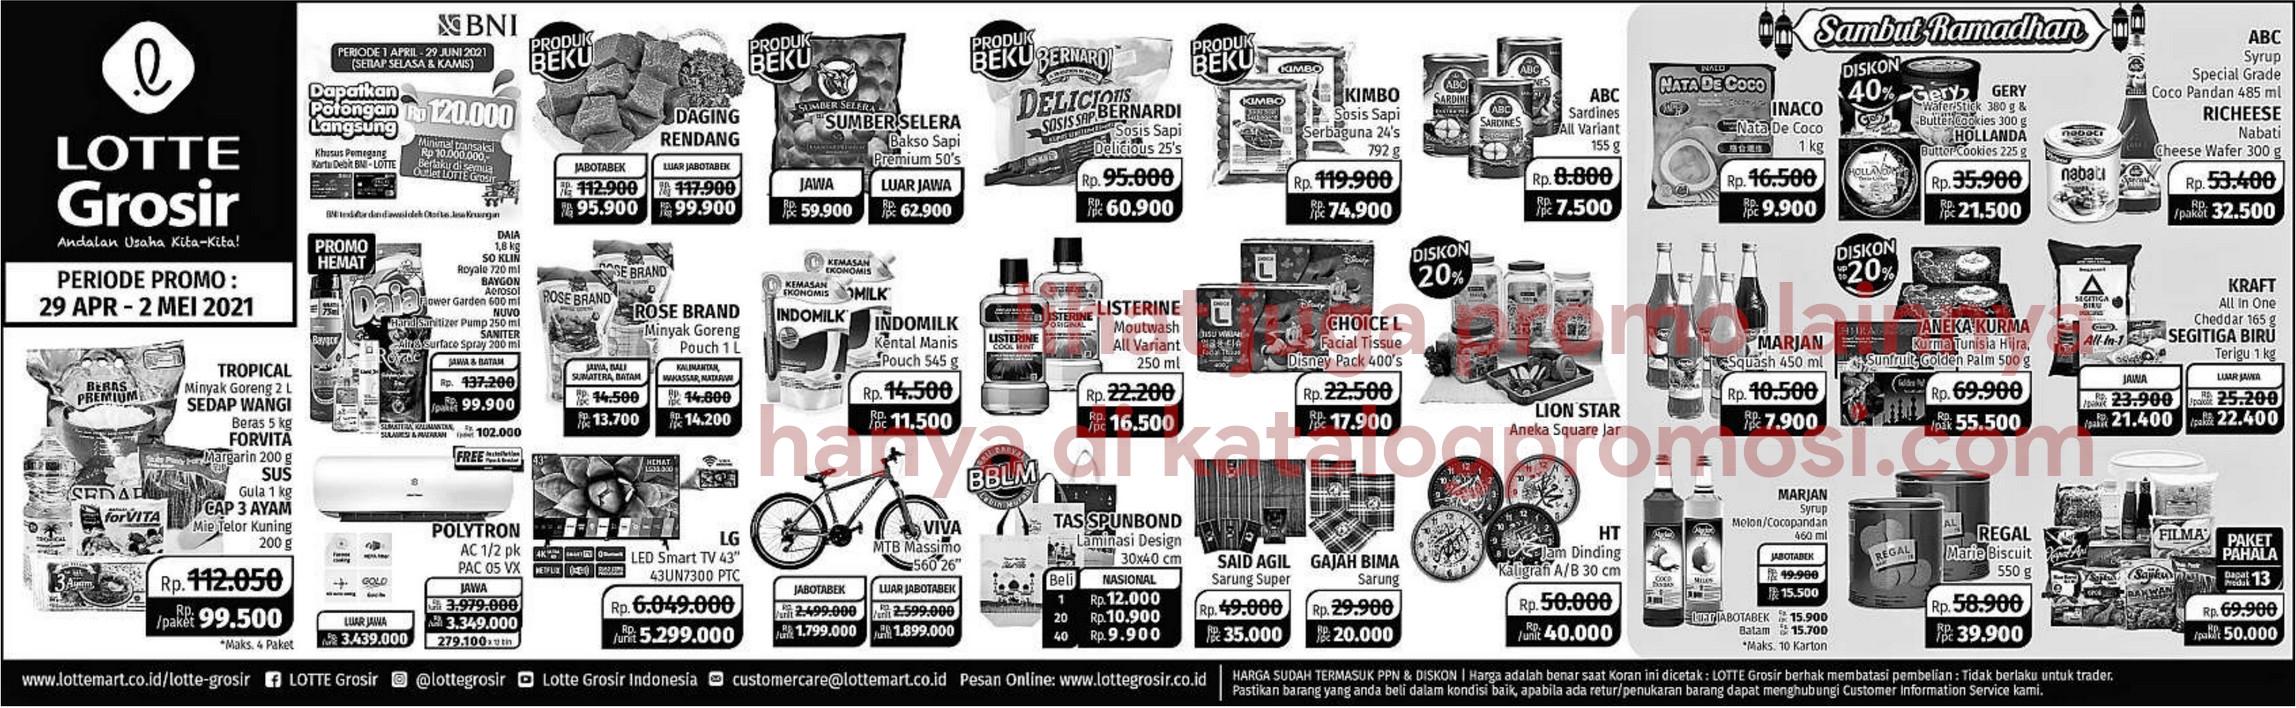 Promo LOTTE GROSIR WEEKEND SPECIAL periode 29 April - 02 Mei 2021